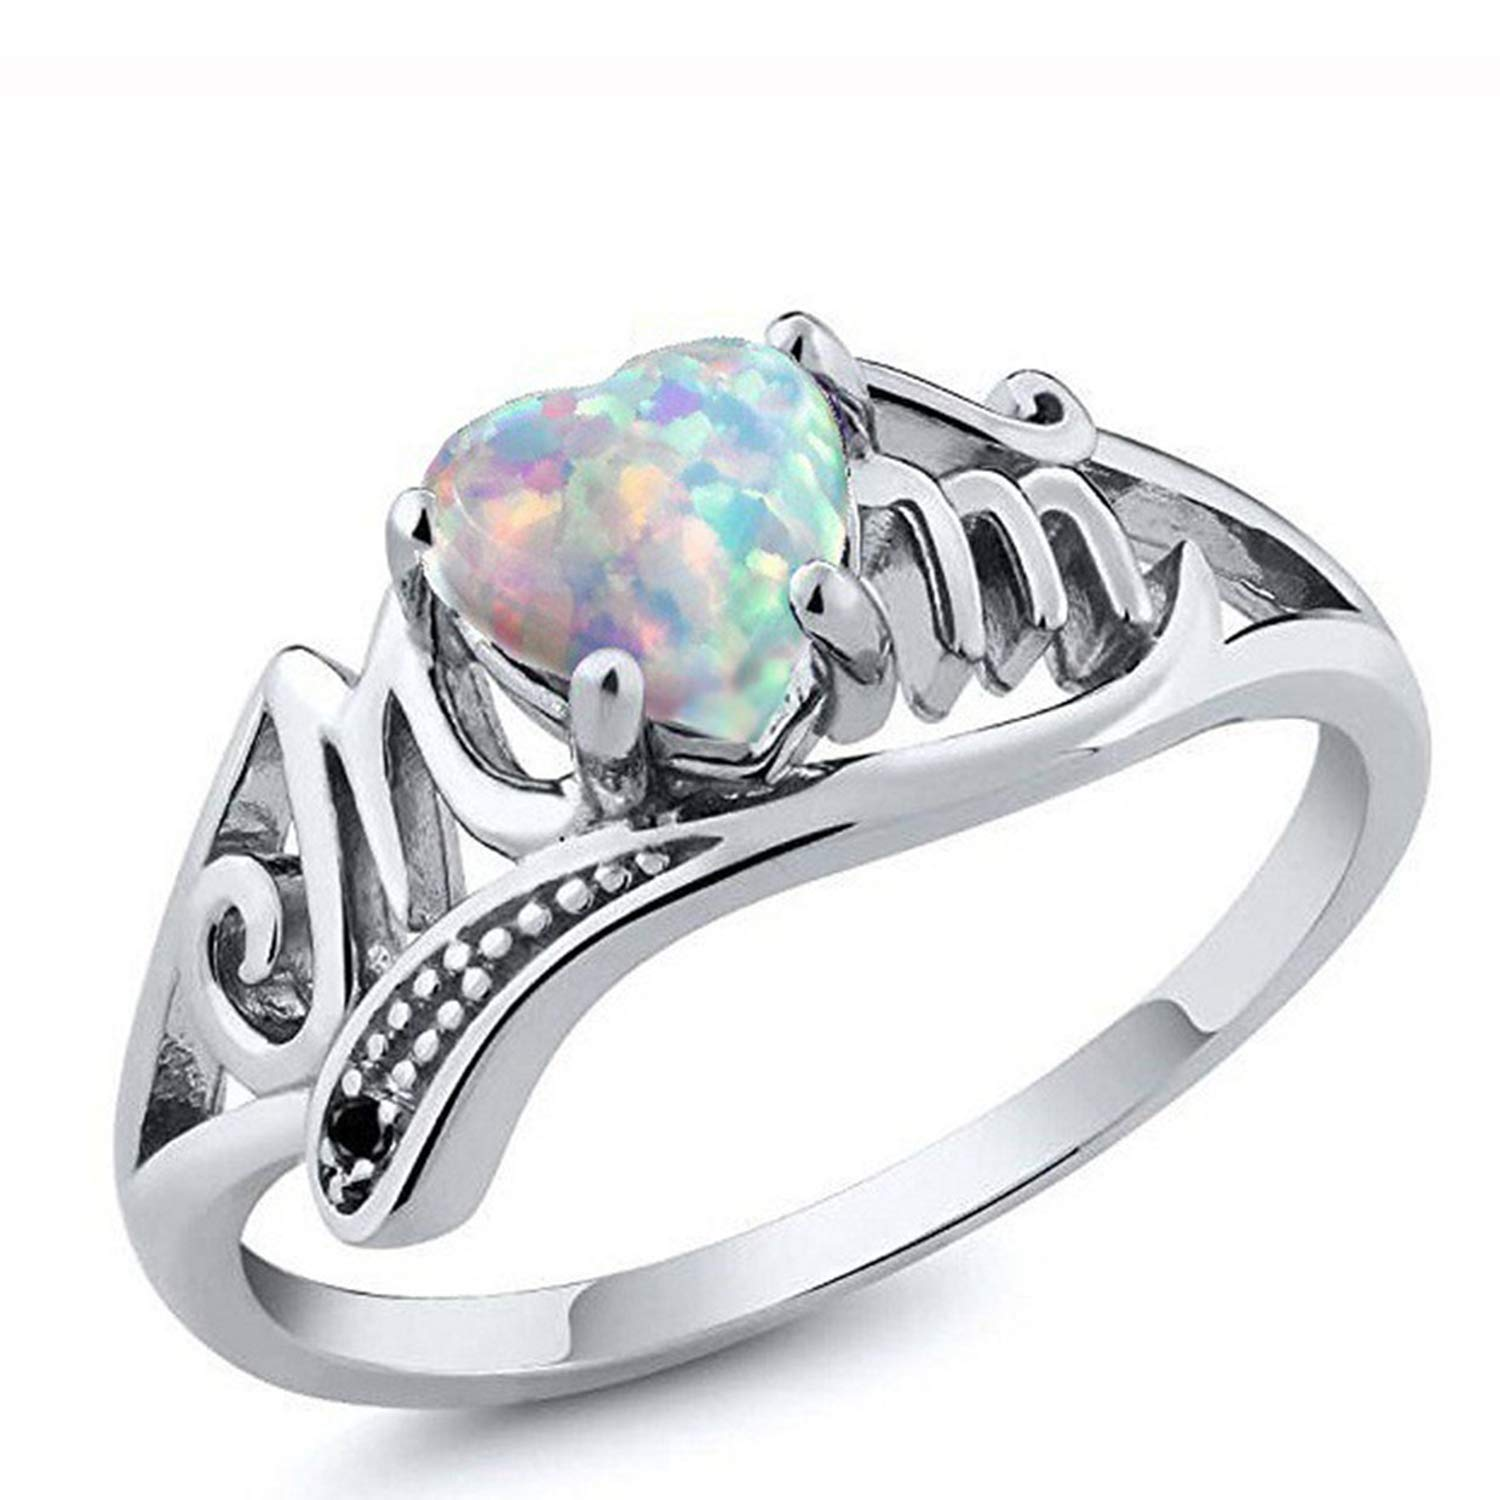 HUAMING Mom Colorful Heart Ring Love Mum Diamond Ring Jewelry Luxury Best Gift for Mother Party Wedding Beauty Band Rings (Multicolor, 5)